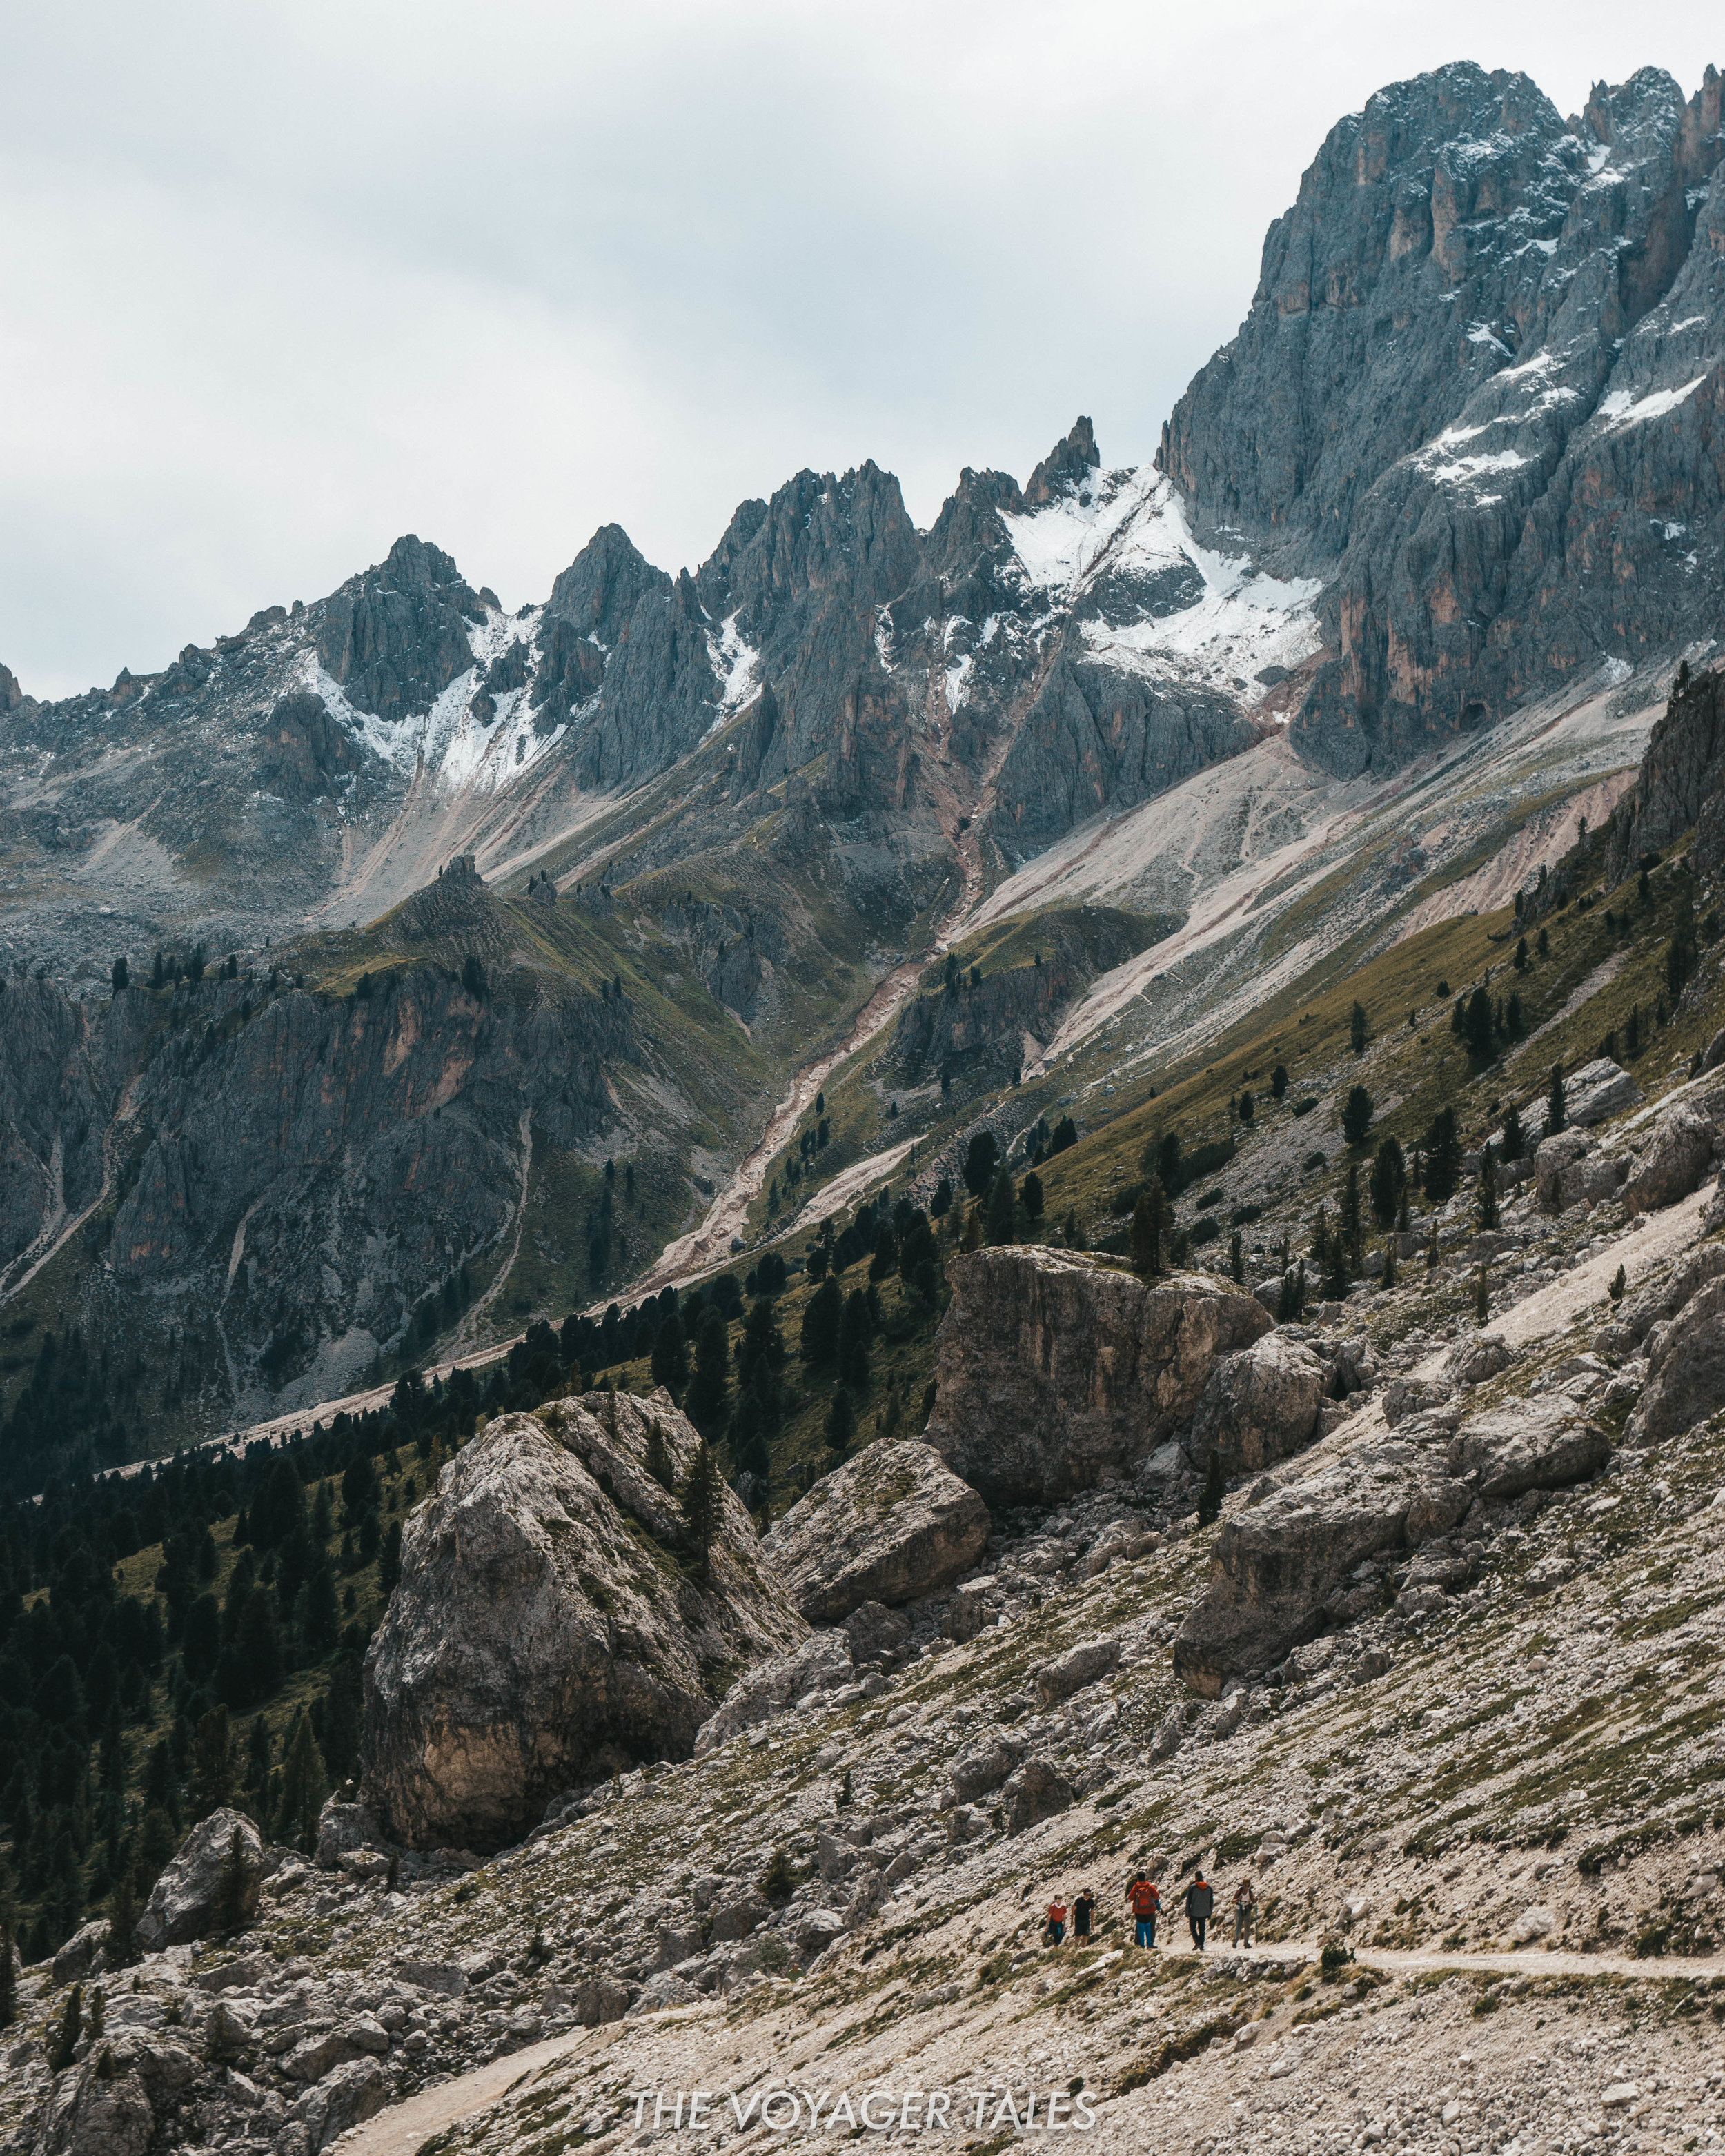 Hiking from Pas de la Coronelle in the Dolomites, Italy